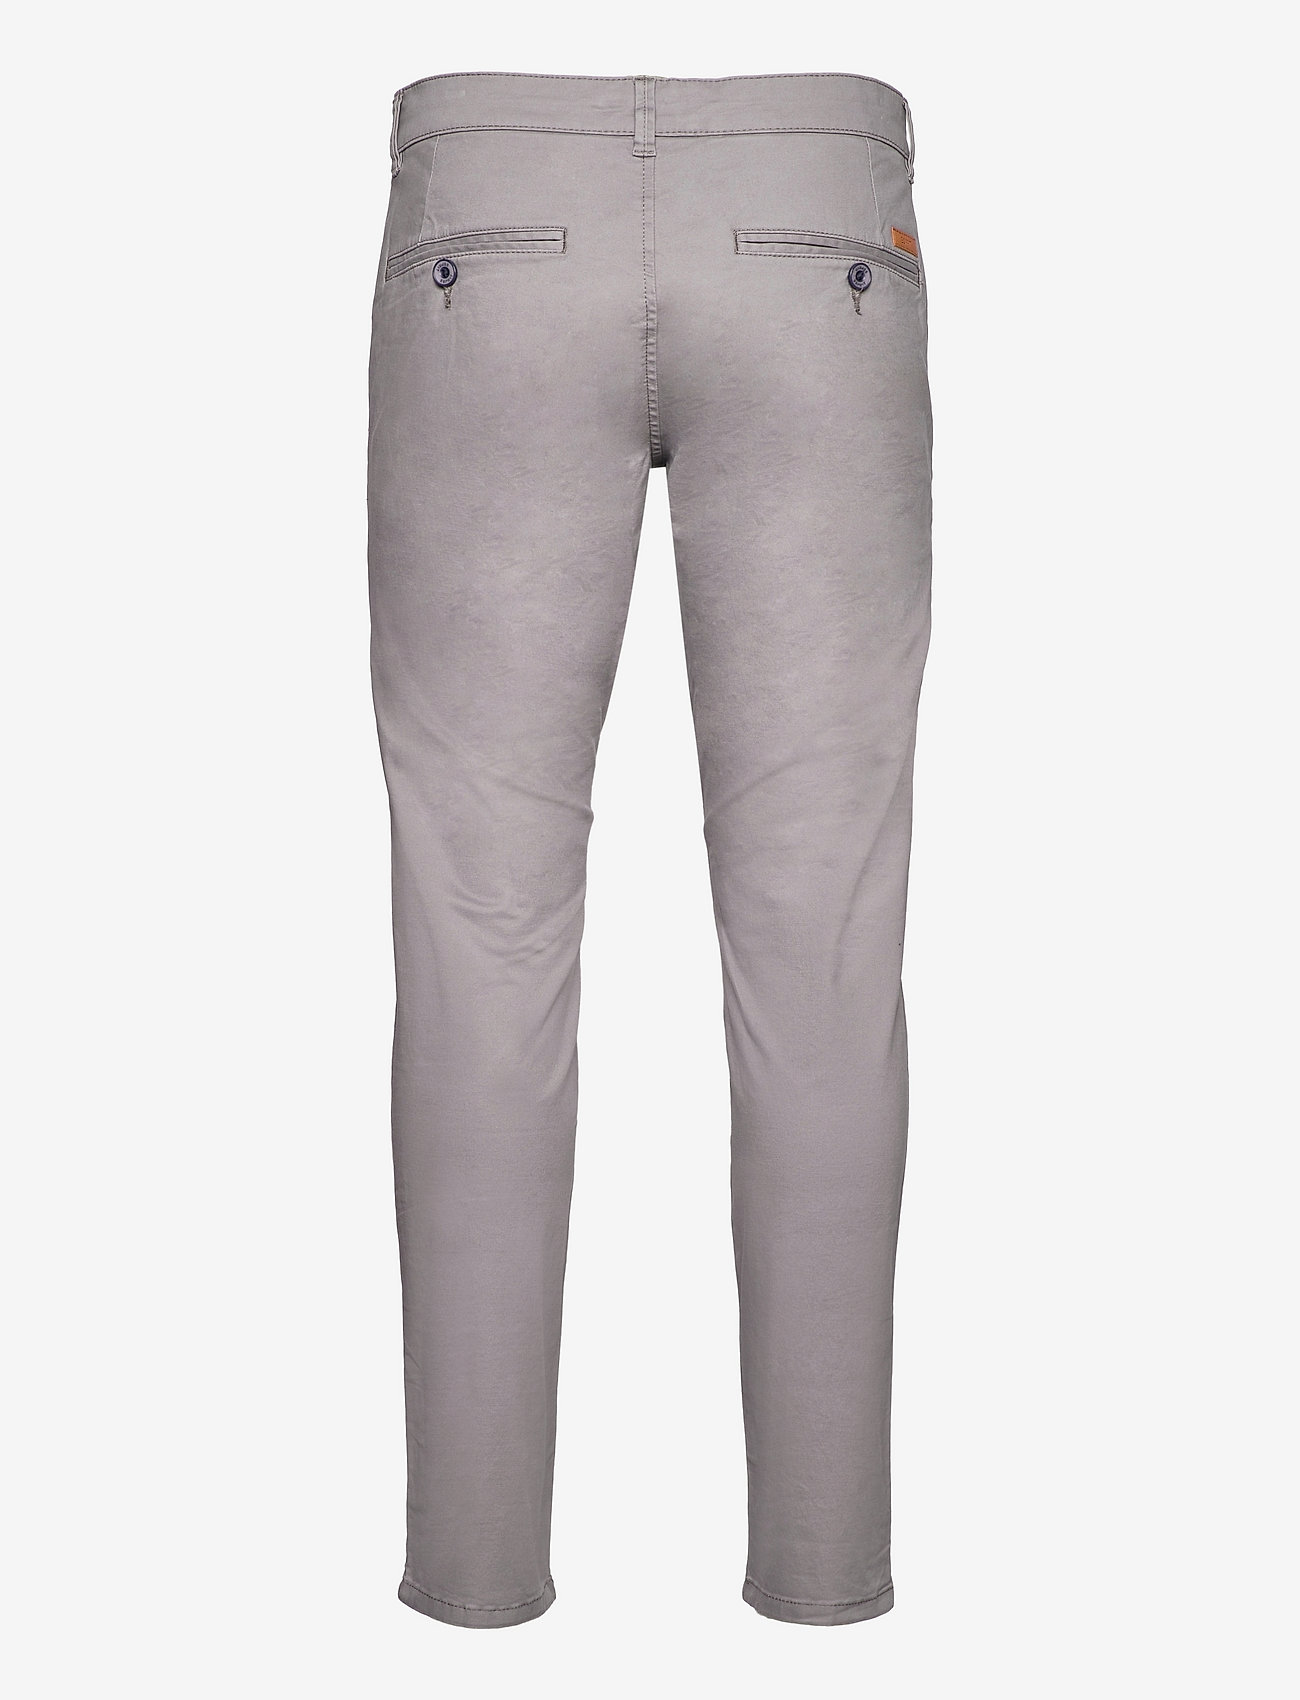 Esprit Casual - Pants woven - chinos - grey - 1